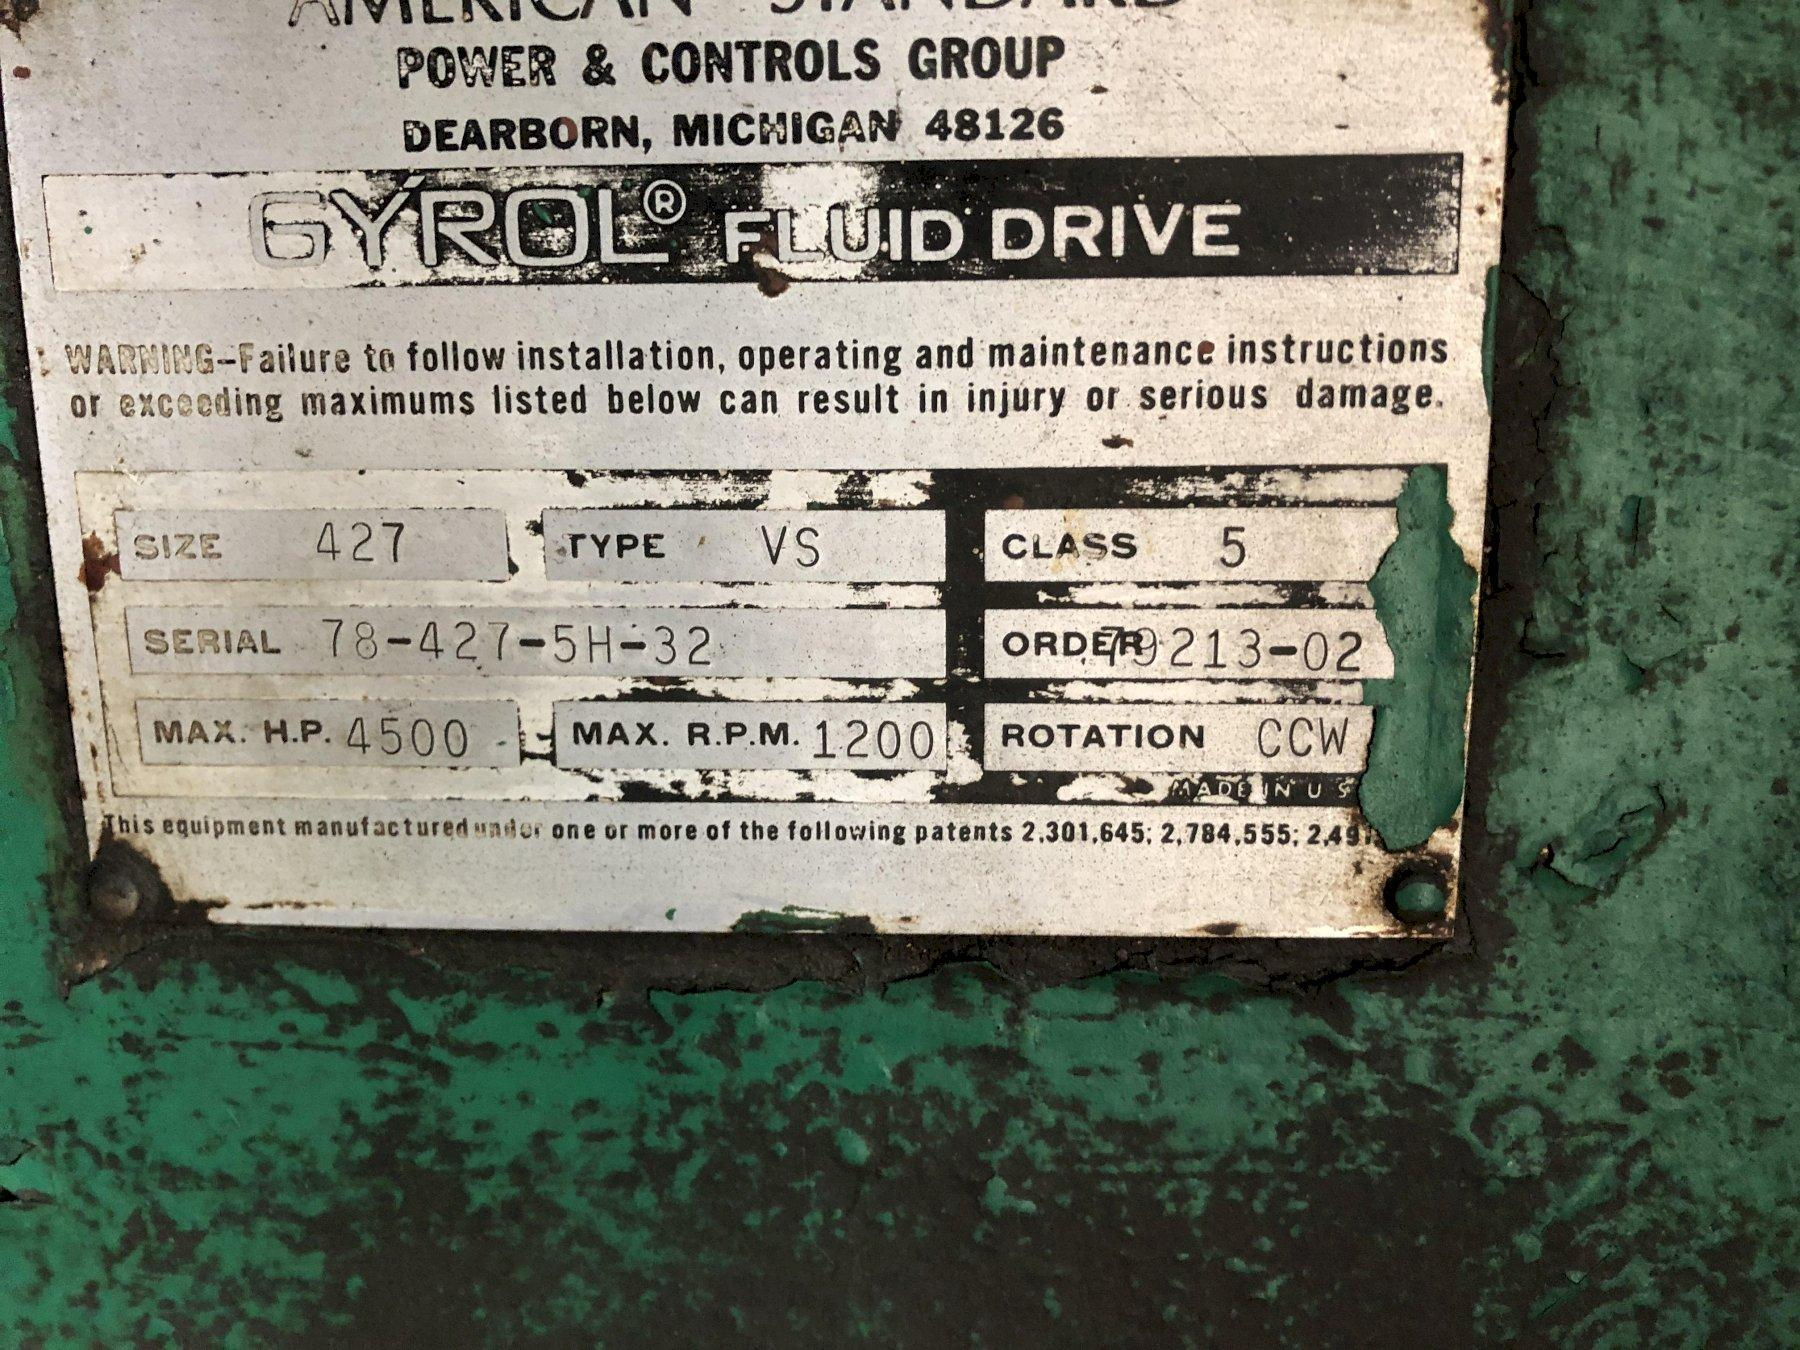 American size 427 type vs class 5 blower s/n 78-427-5h-32 rated at 1200 rpm with GE model 5k851281a4 4500 hp motor s/n en8406988 1185 rpm, 4000 volt